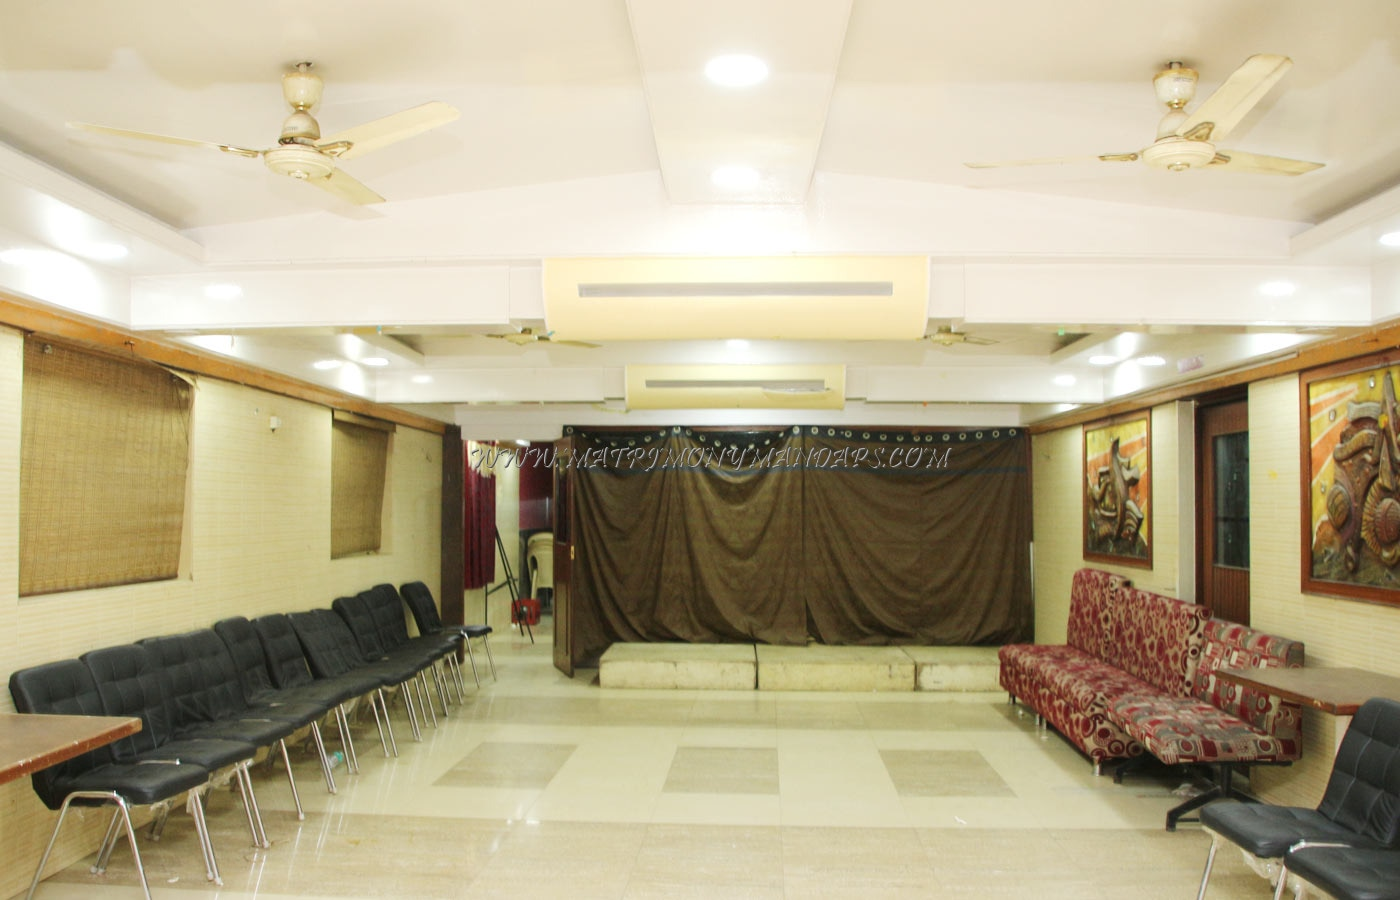 Find the availability of the Cauvery Grand in Ramamurthy Nagar, Bangalore and avail special offers